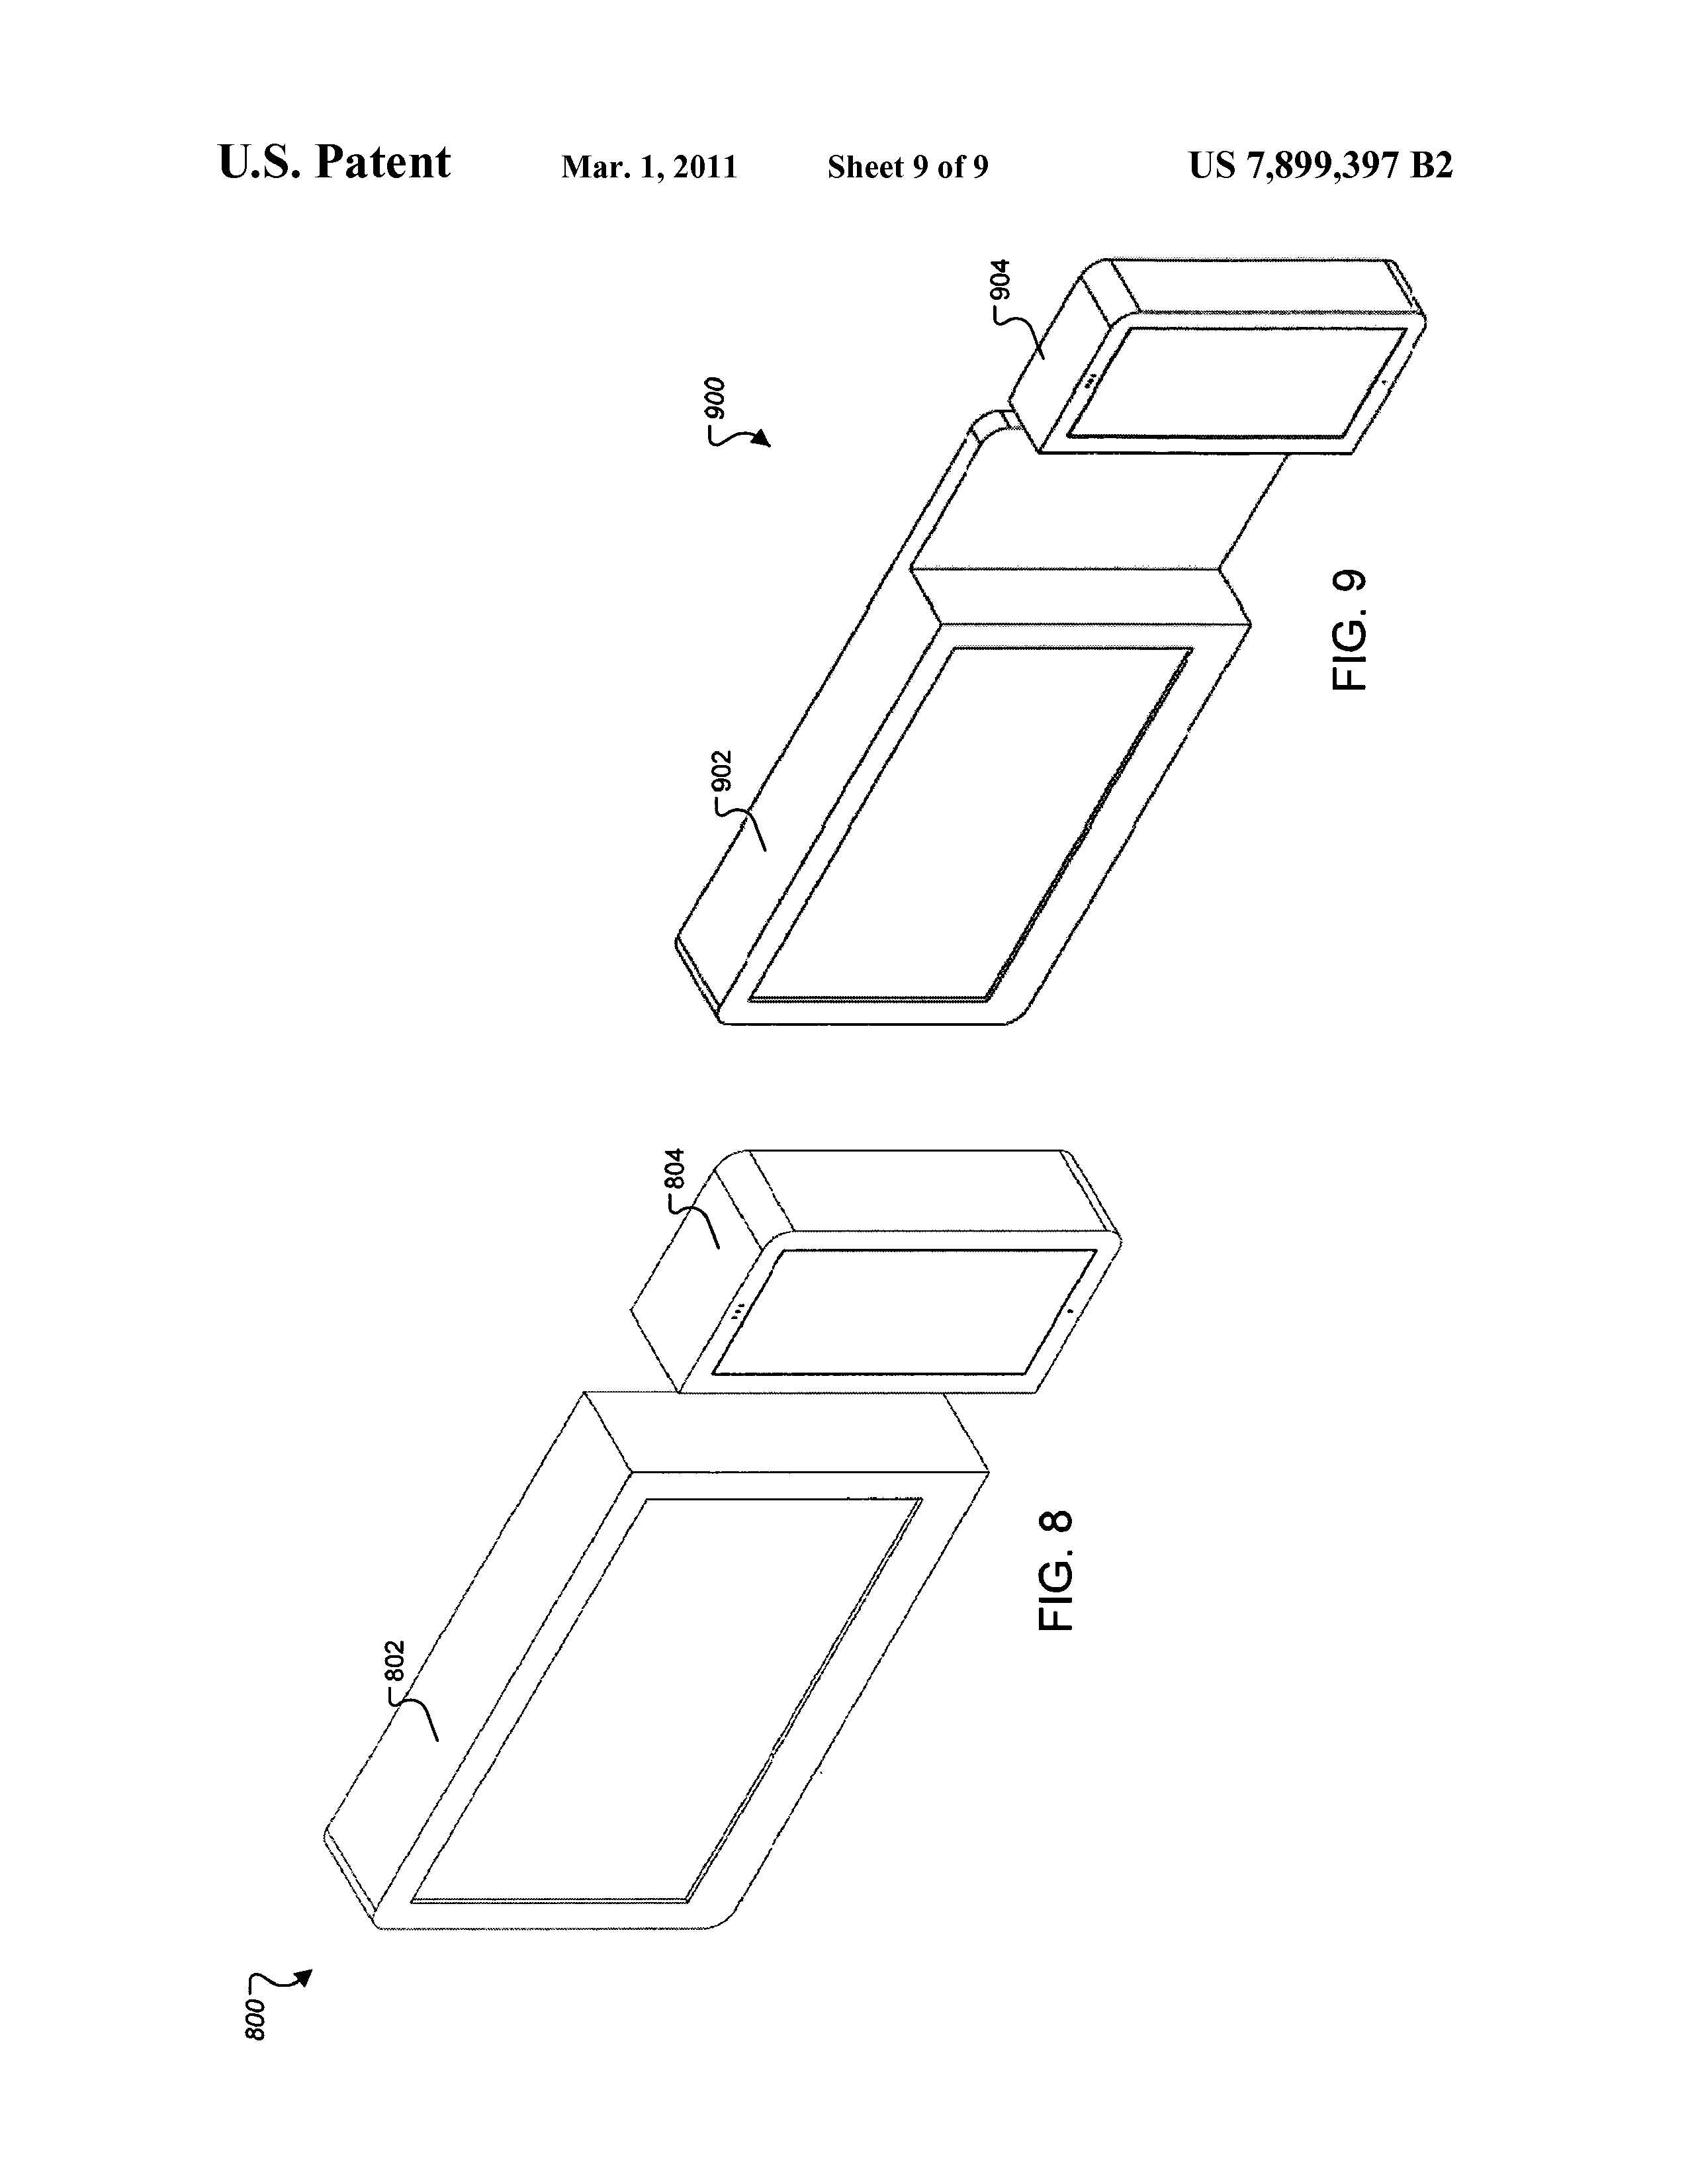 mobile internet device with detachable wireless module